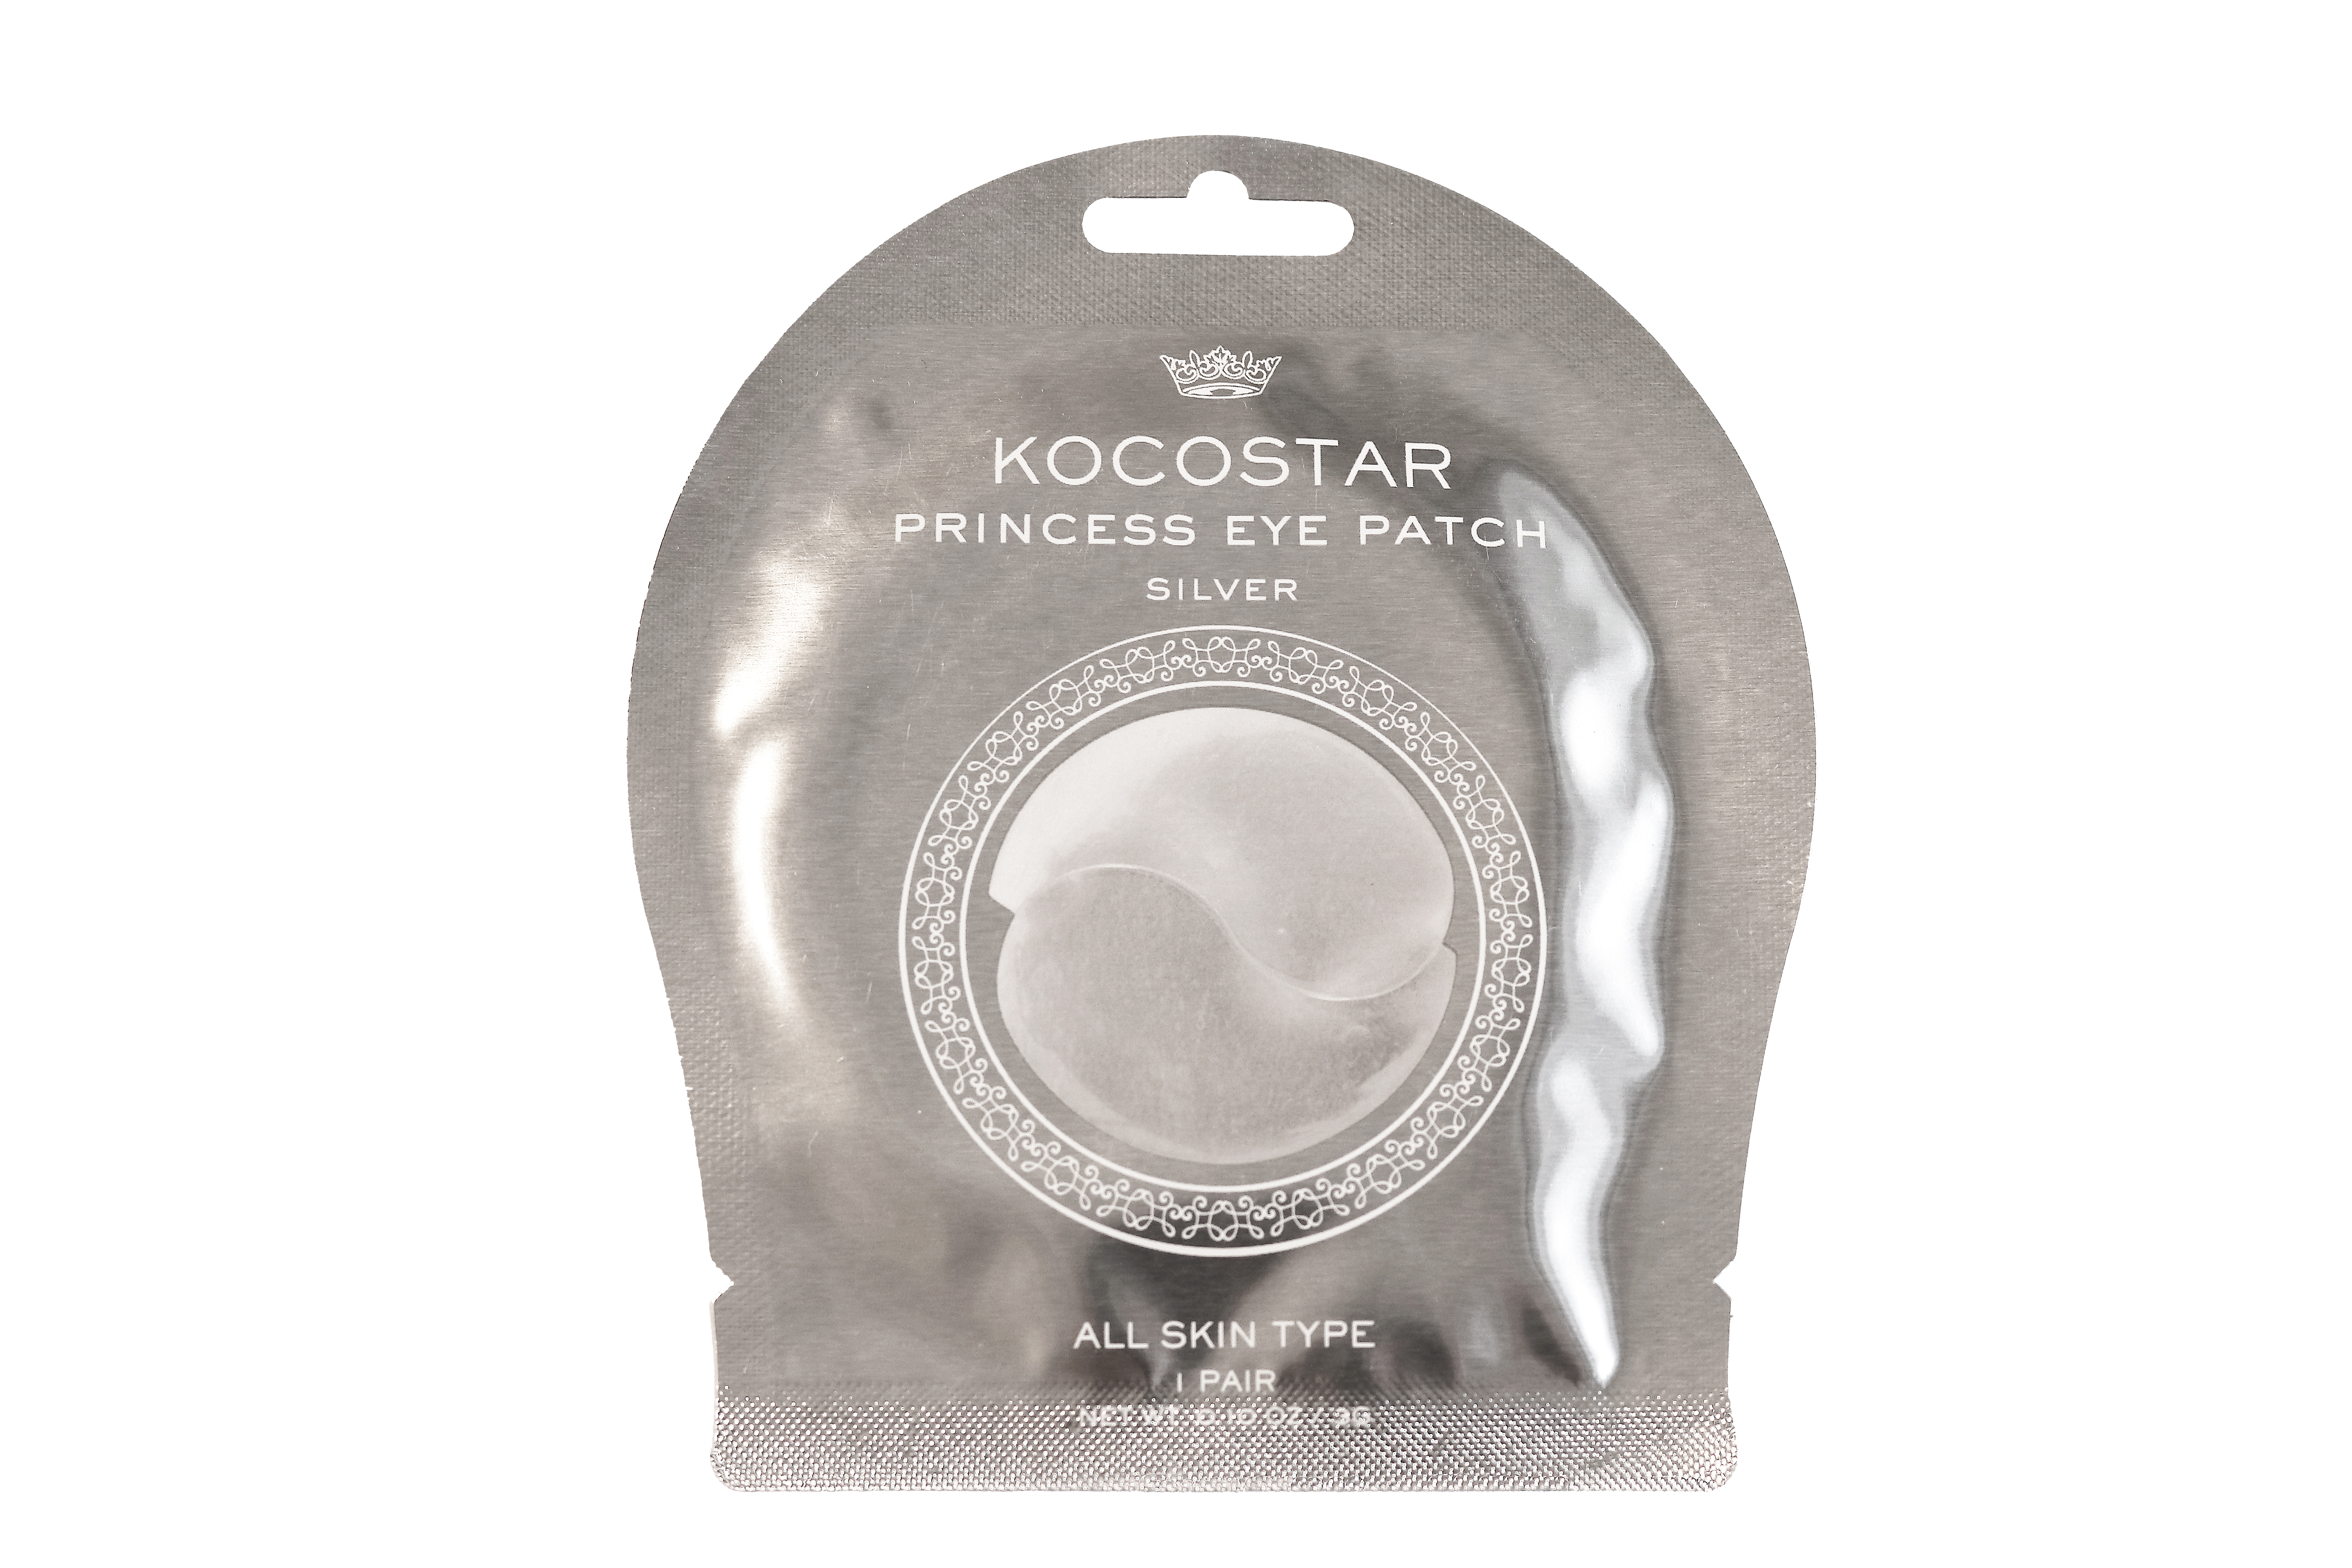 Princess Eye Patch Silver 1 pair